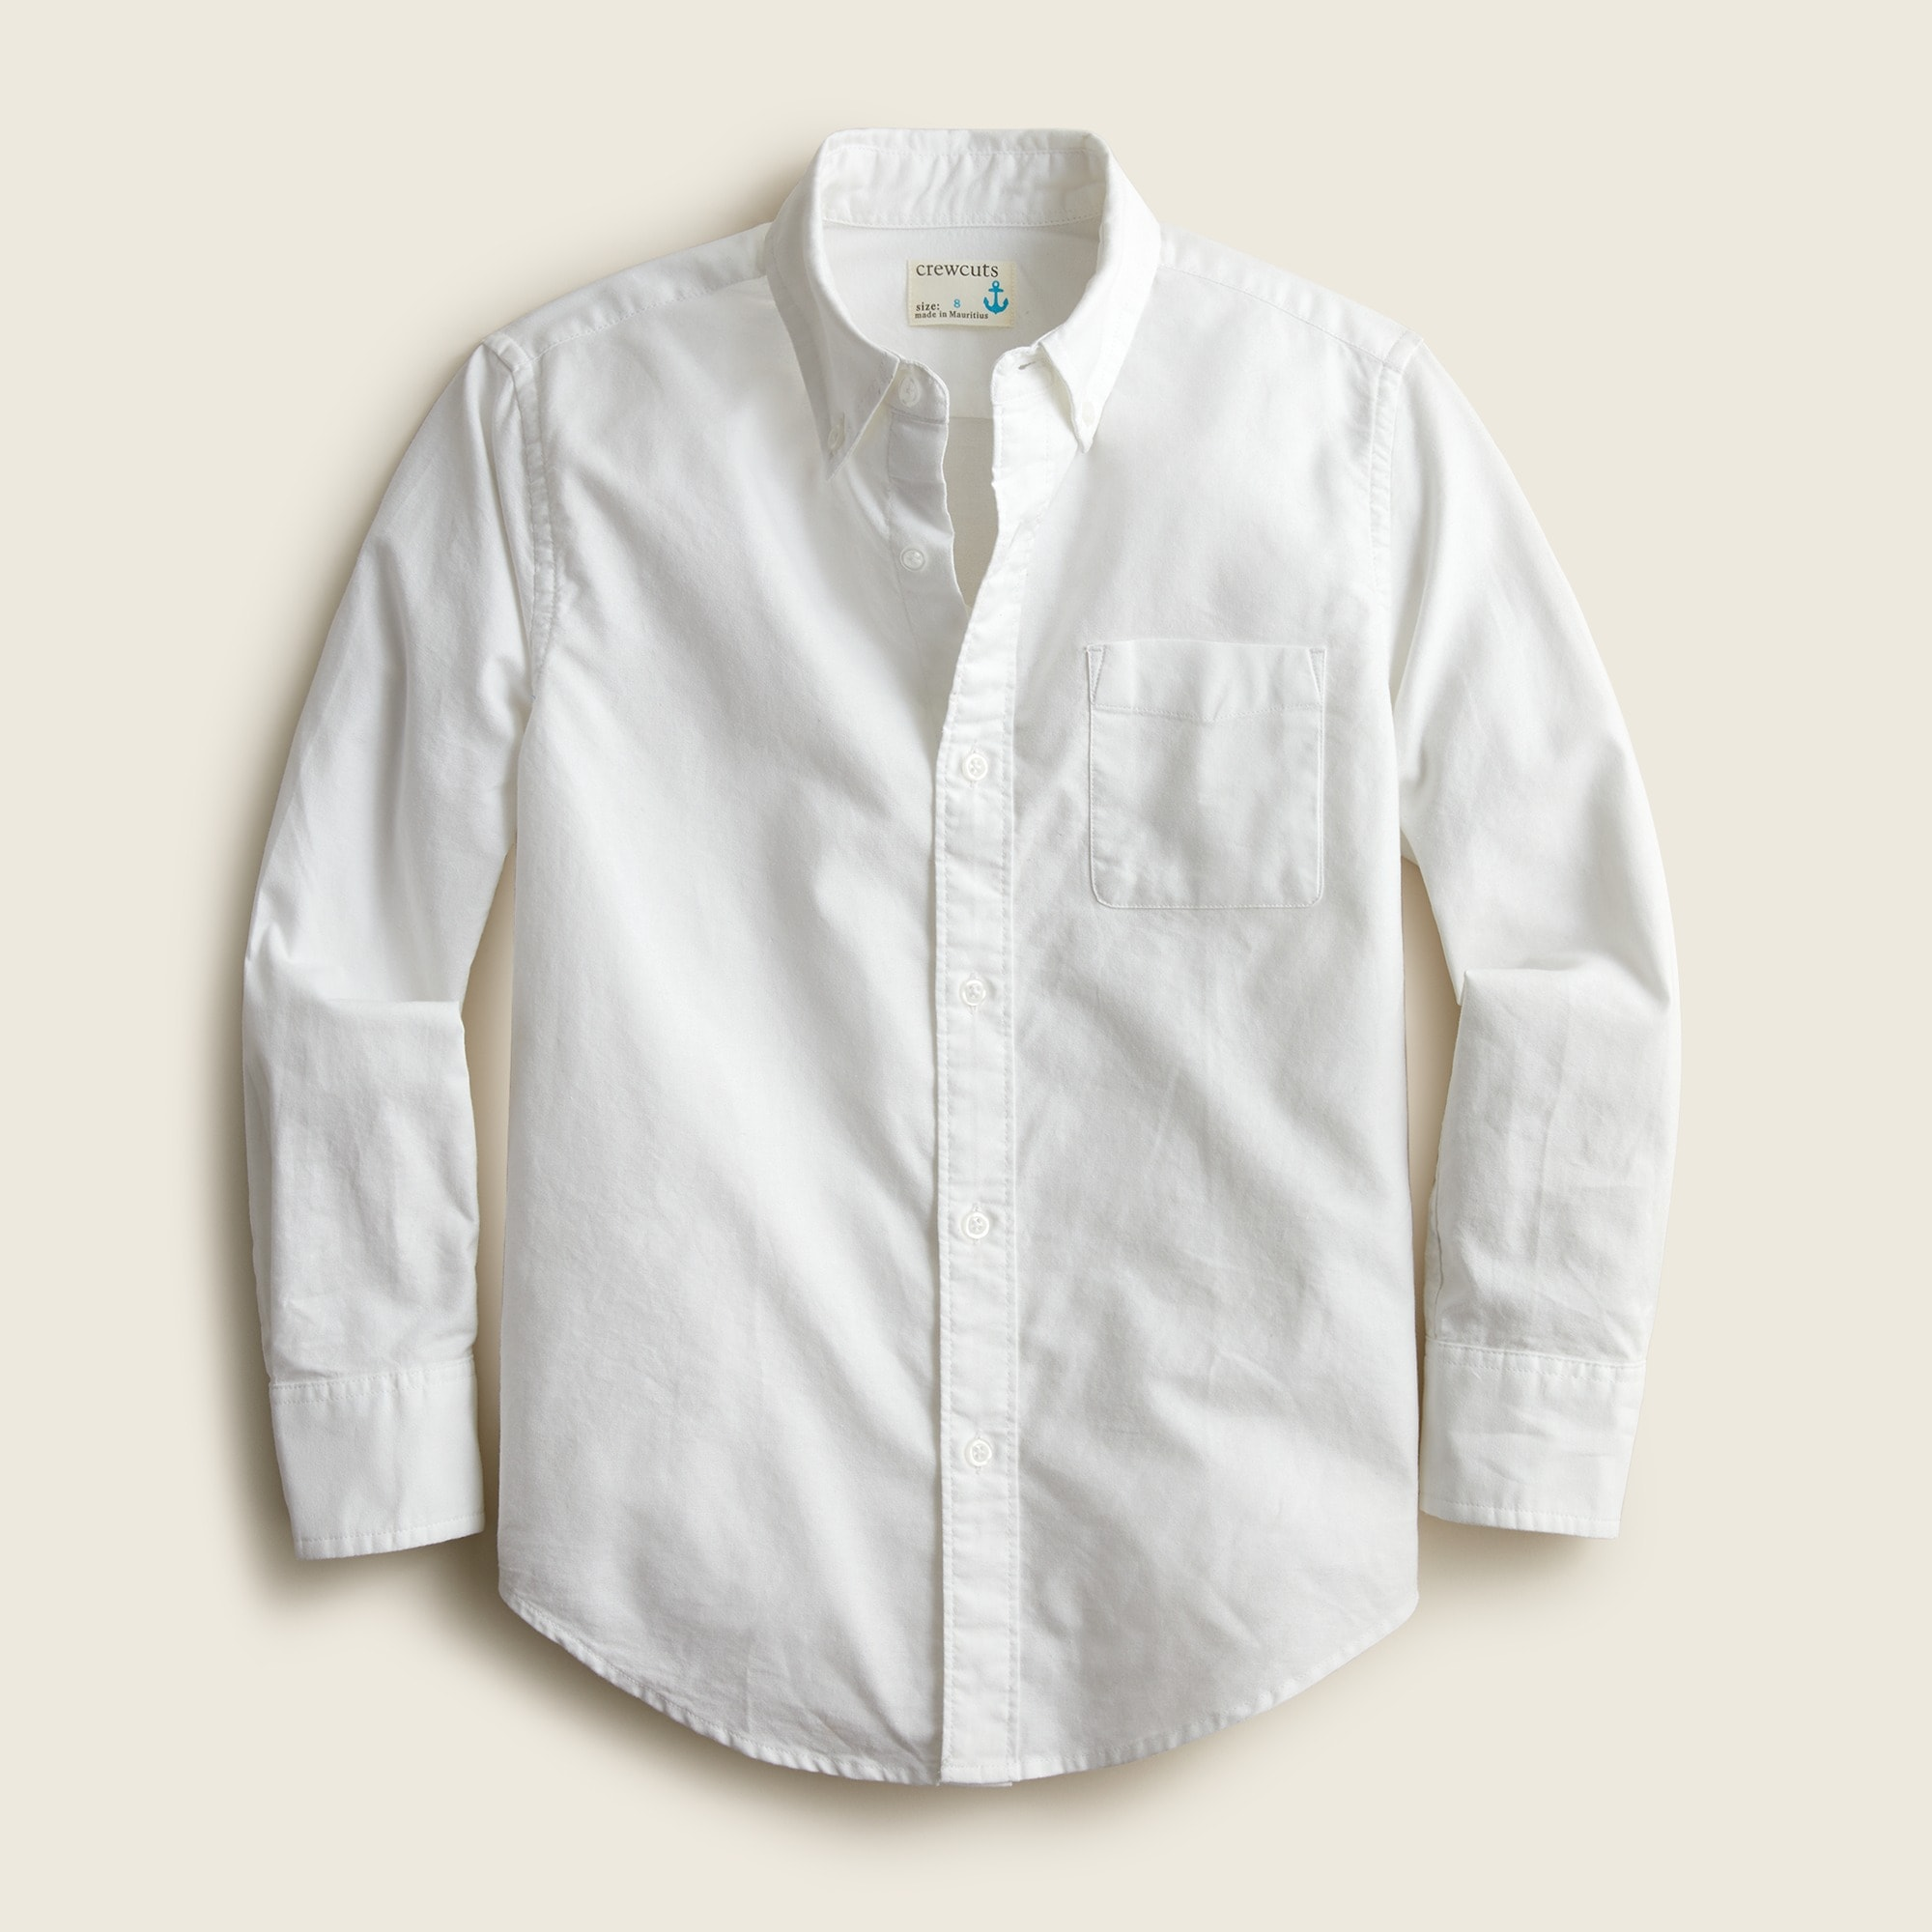 Image 1 for Kids' oxford cotton shirt